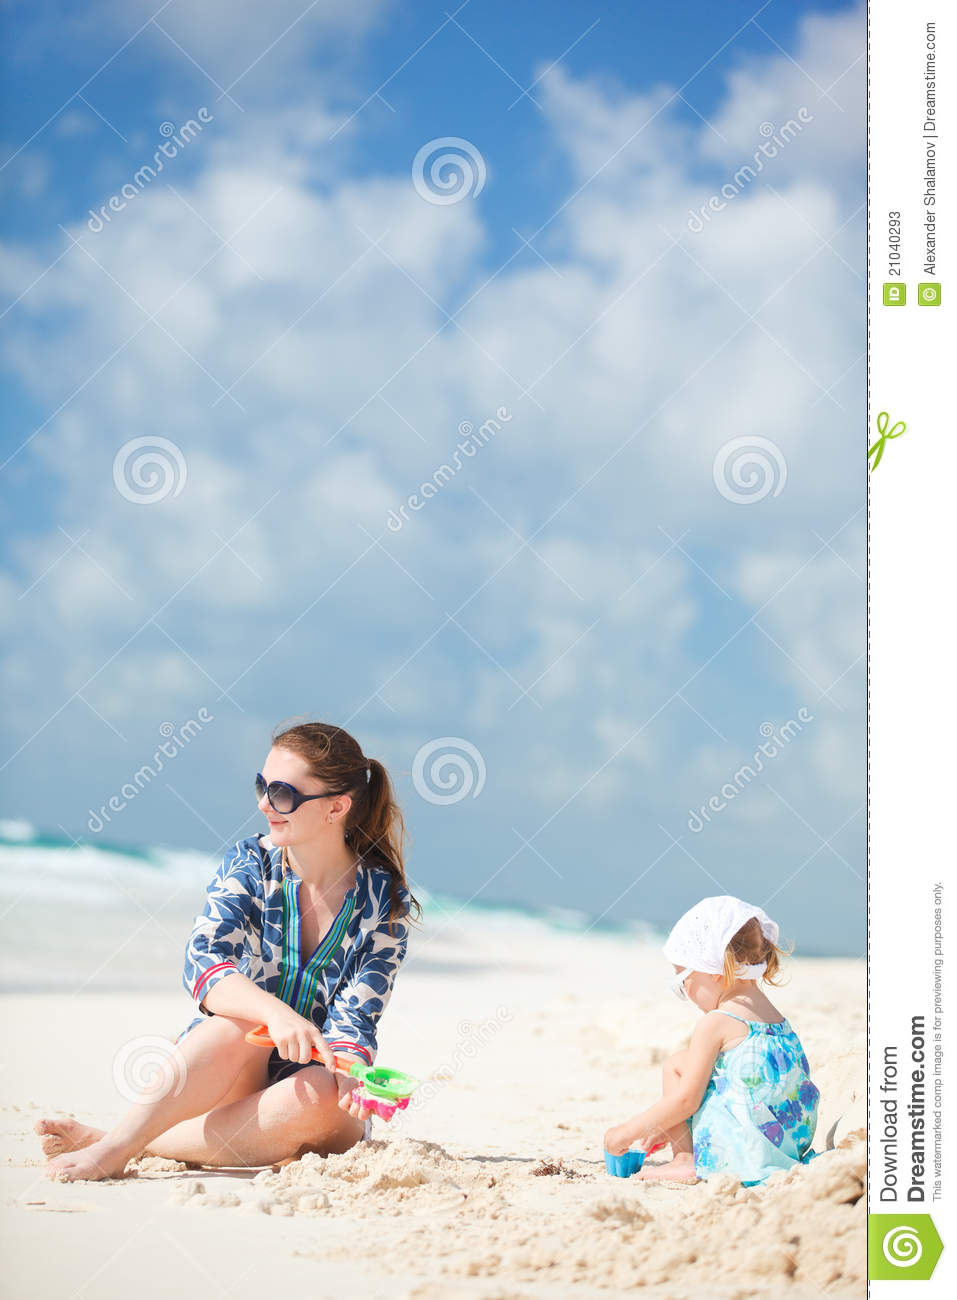 Mom and daughter on vacation hot girls wallpaper for Best mother daughter weekend getaways